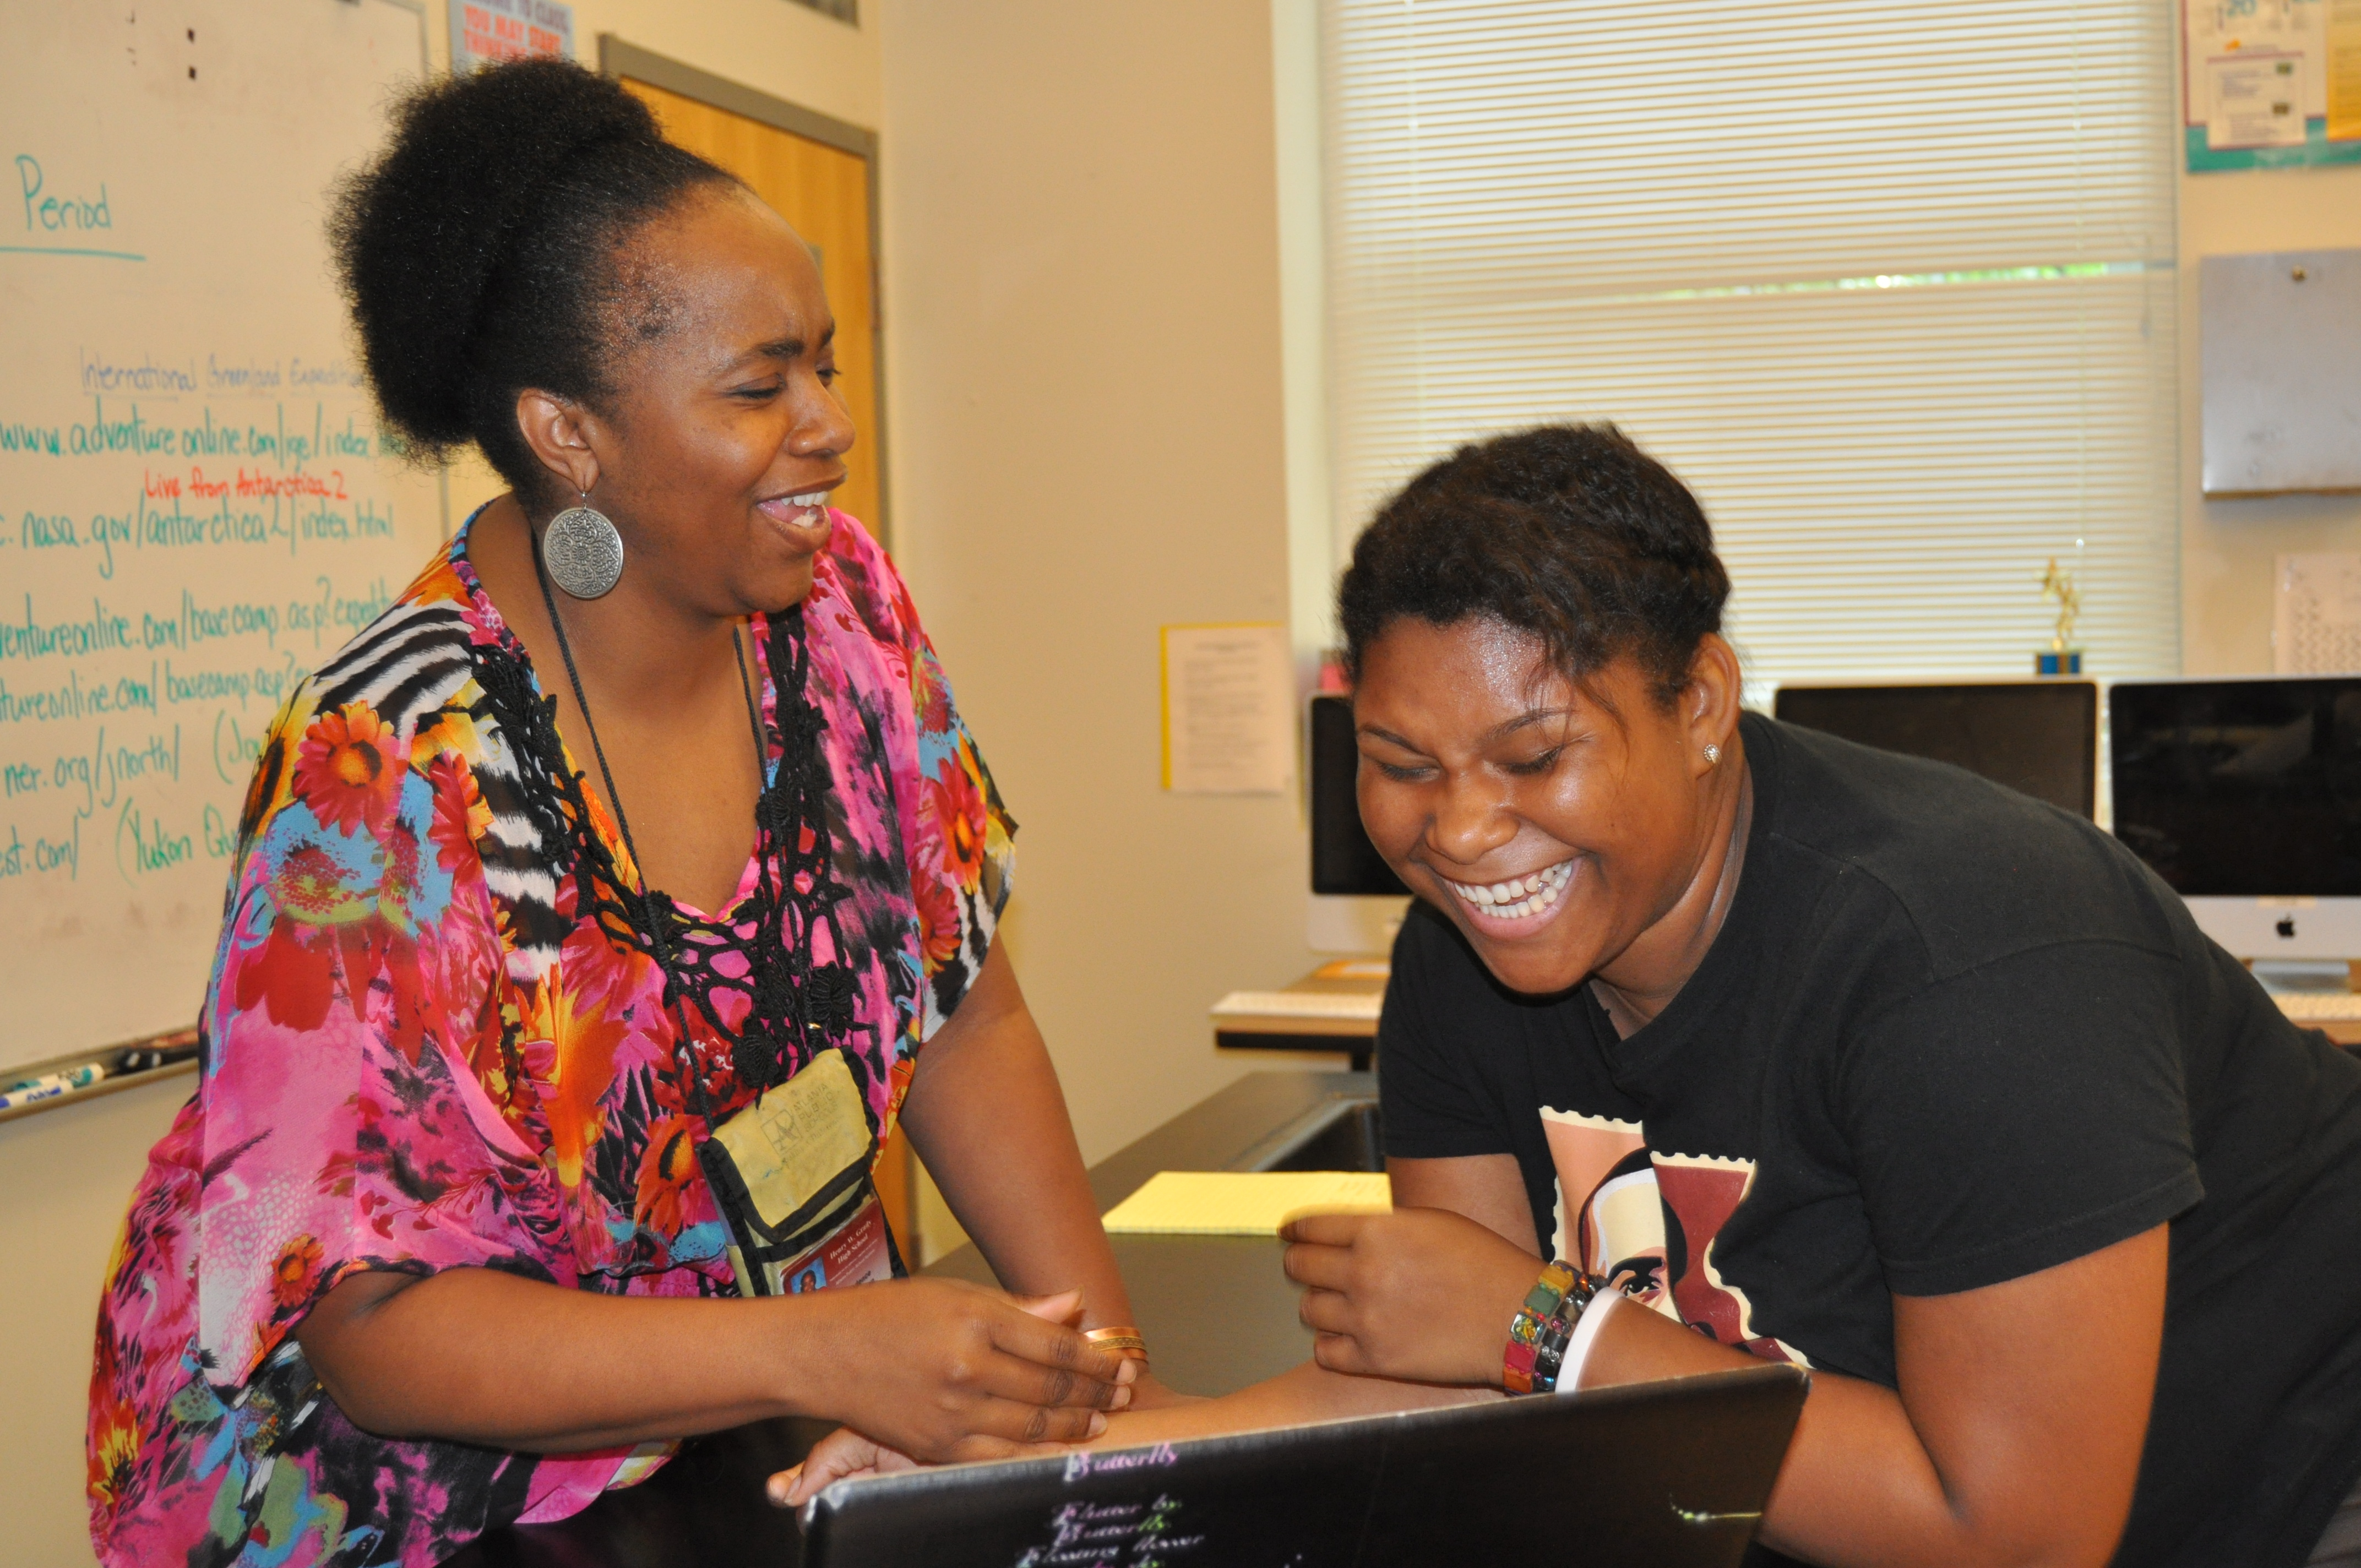 Dr. Cadence Spearman, Grady's 2012 Teacher of the Year, is pictured with a student. The AP and Honors Biology teacher discovered she'd earned the accolade after receiving a text message from a faculty member.